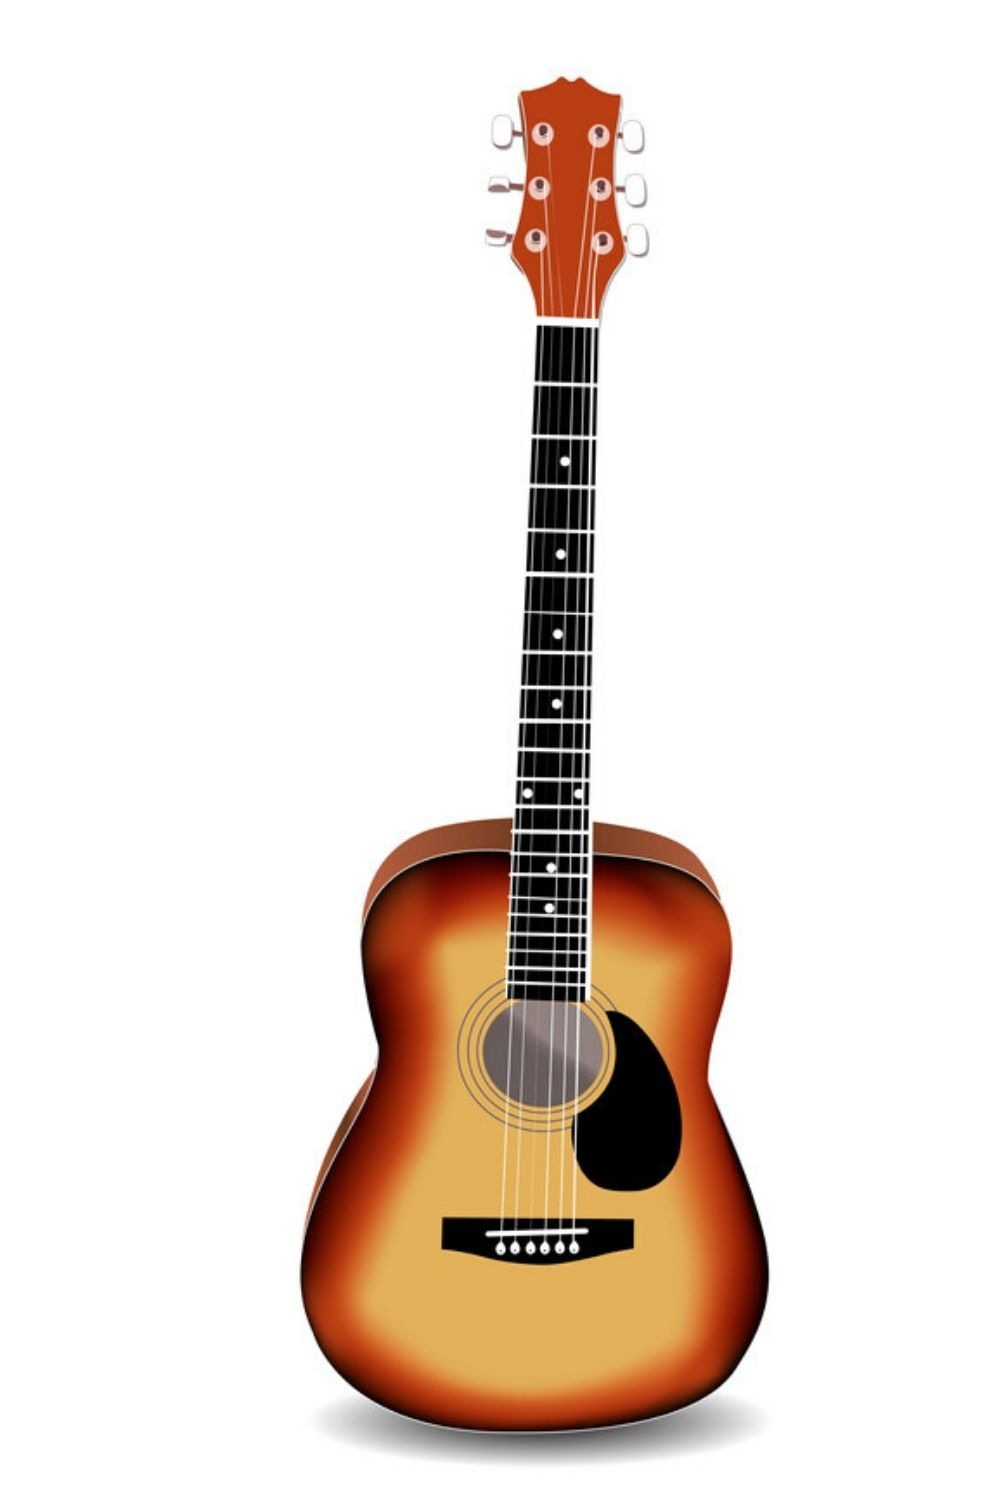 The Best Acoustic Guitars For Under 100 Our Top 5 Cheap Steel Strings In 2020 Best Acoustic Guitar Guitar Yamaha Guitar